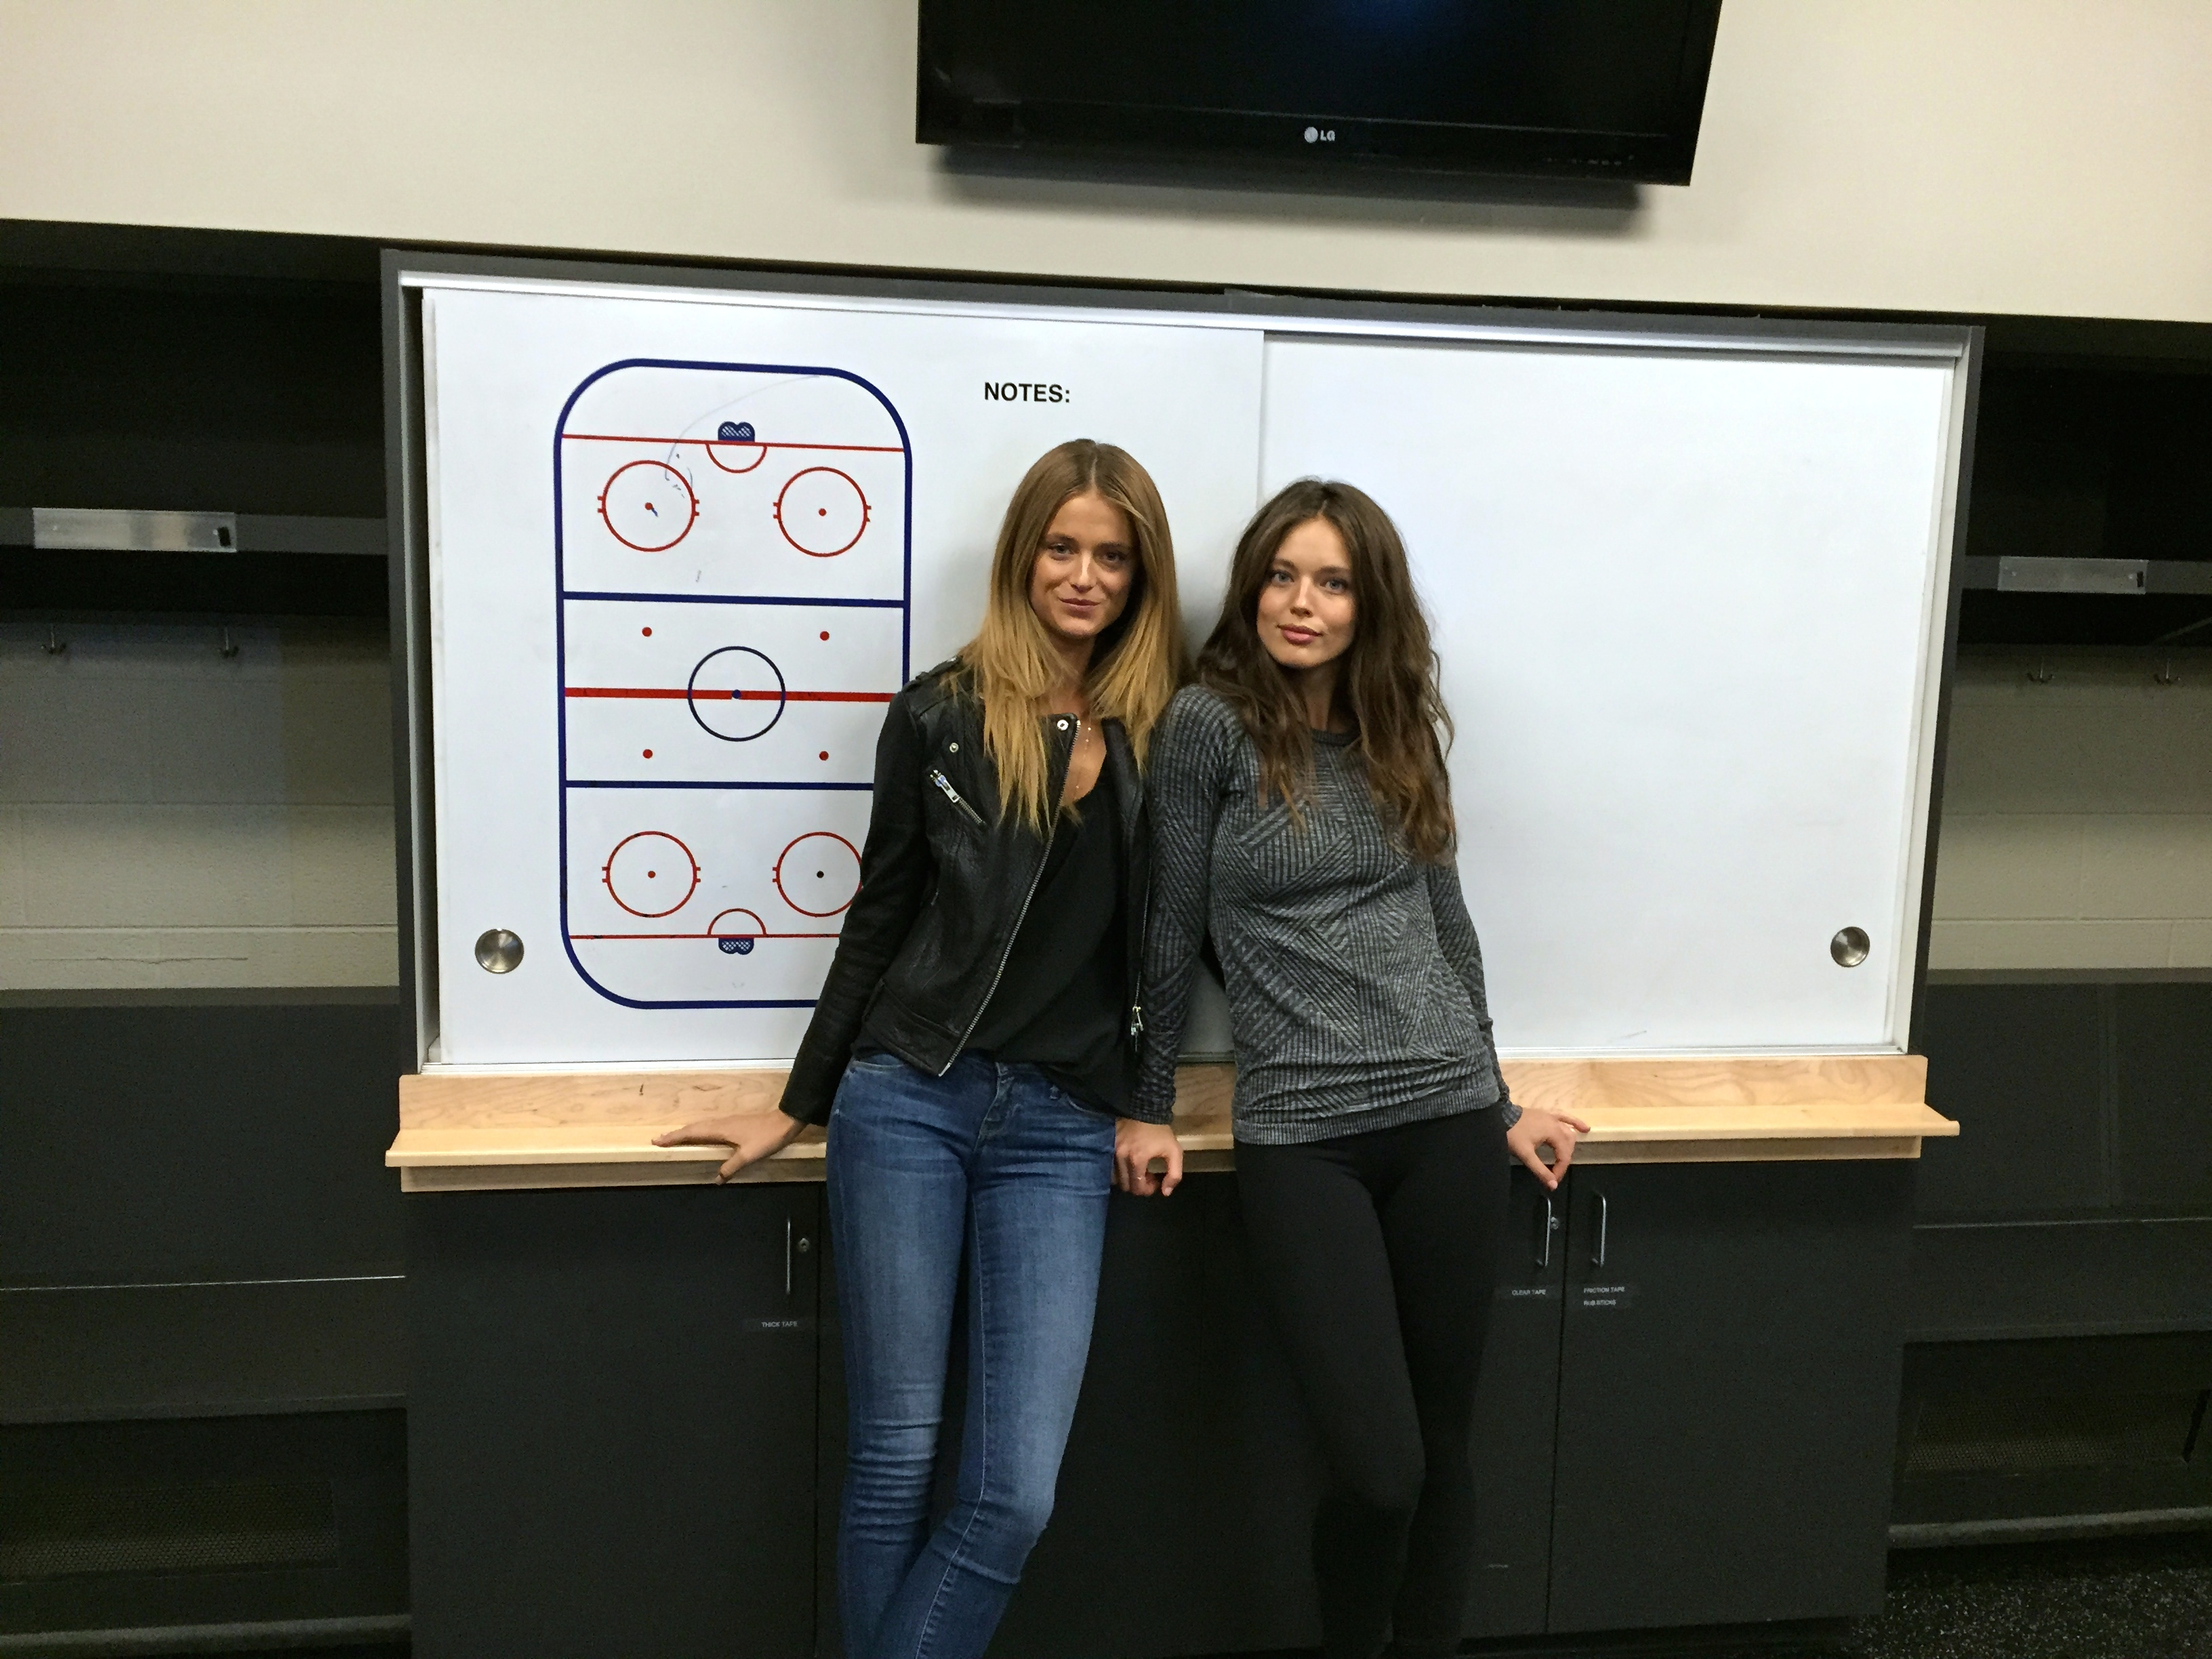 Kate Bock and Emily DiDonato visit the Preds locker room.